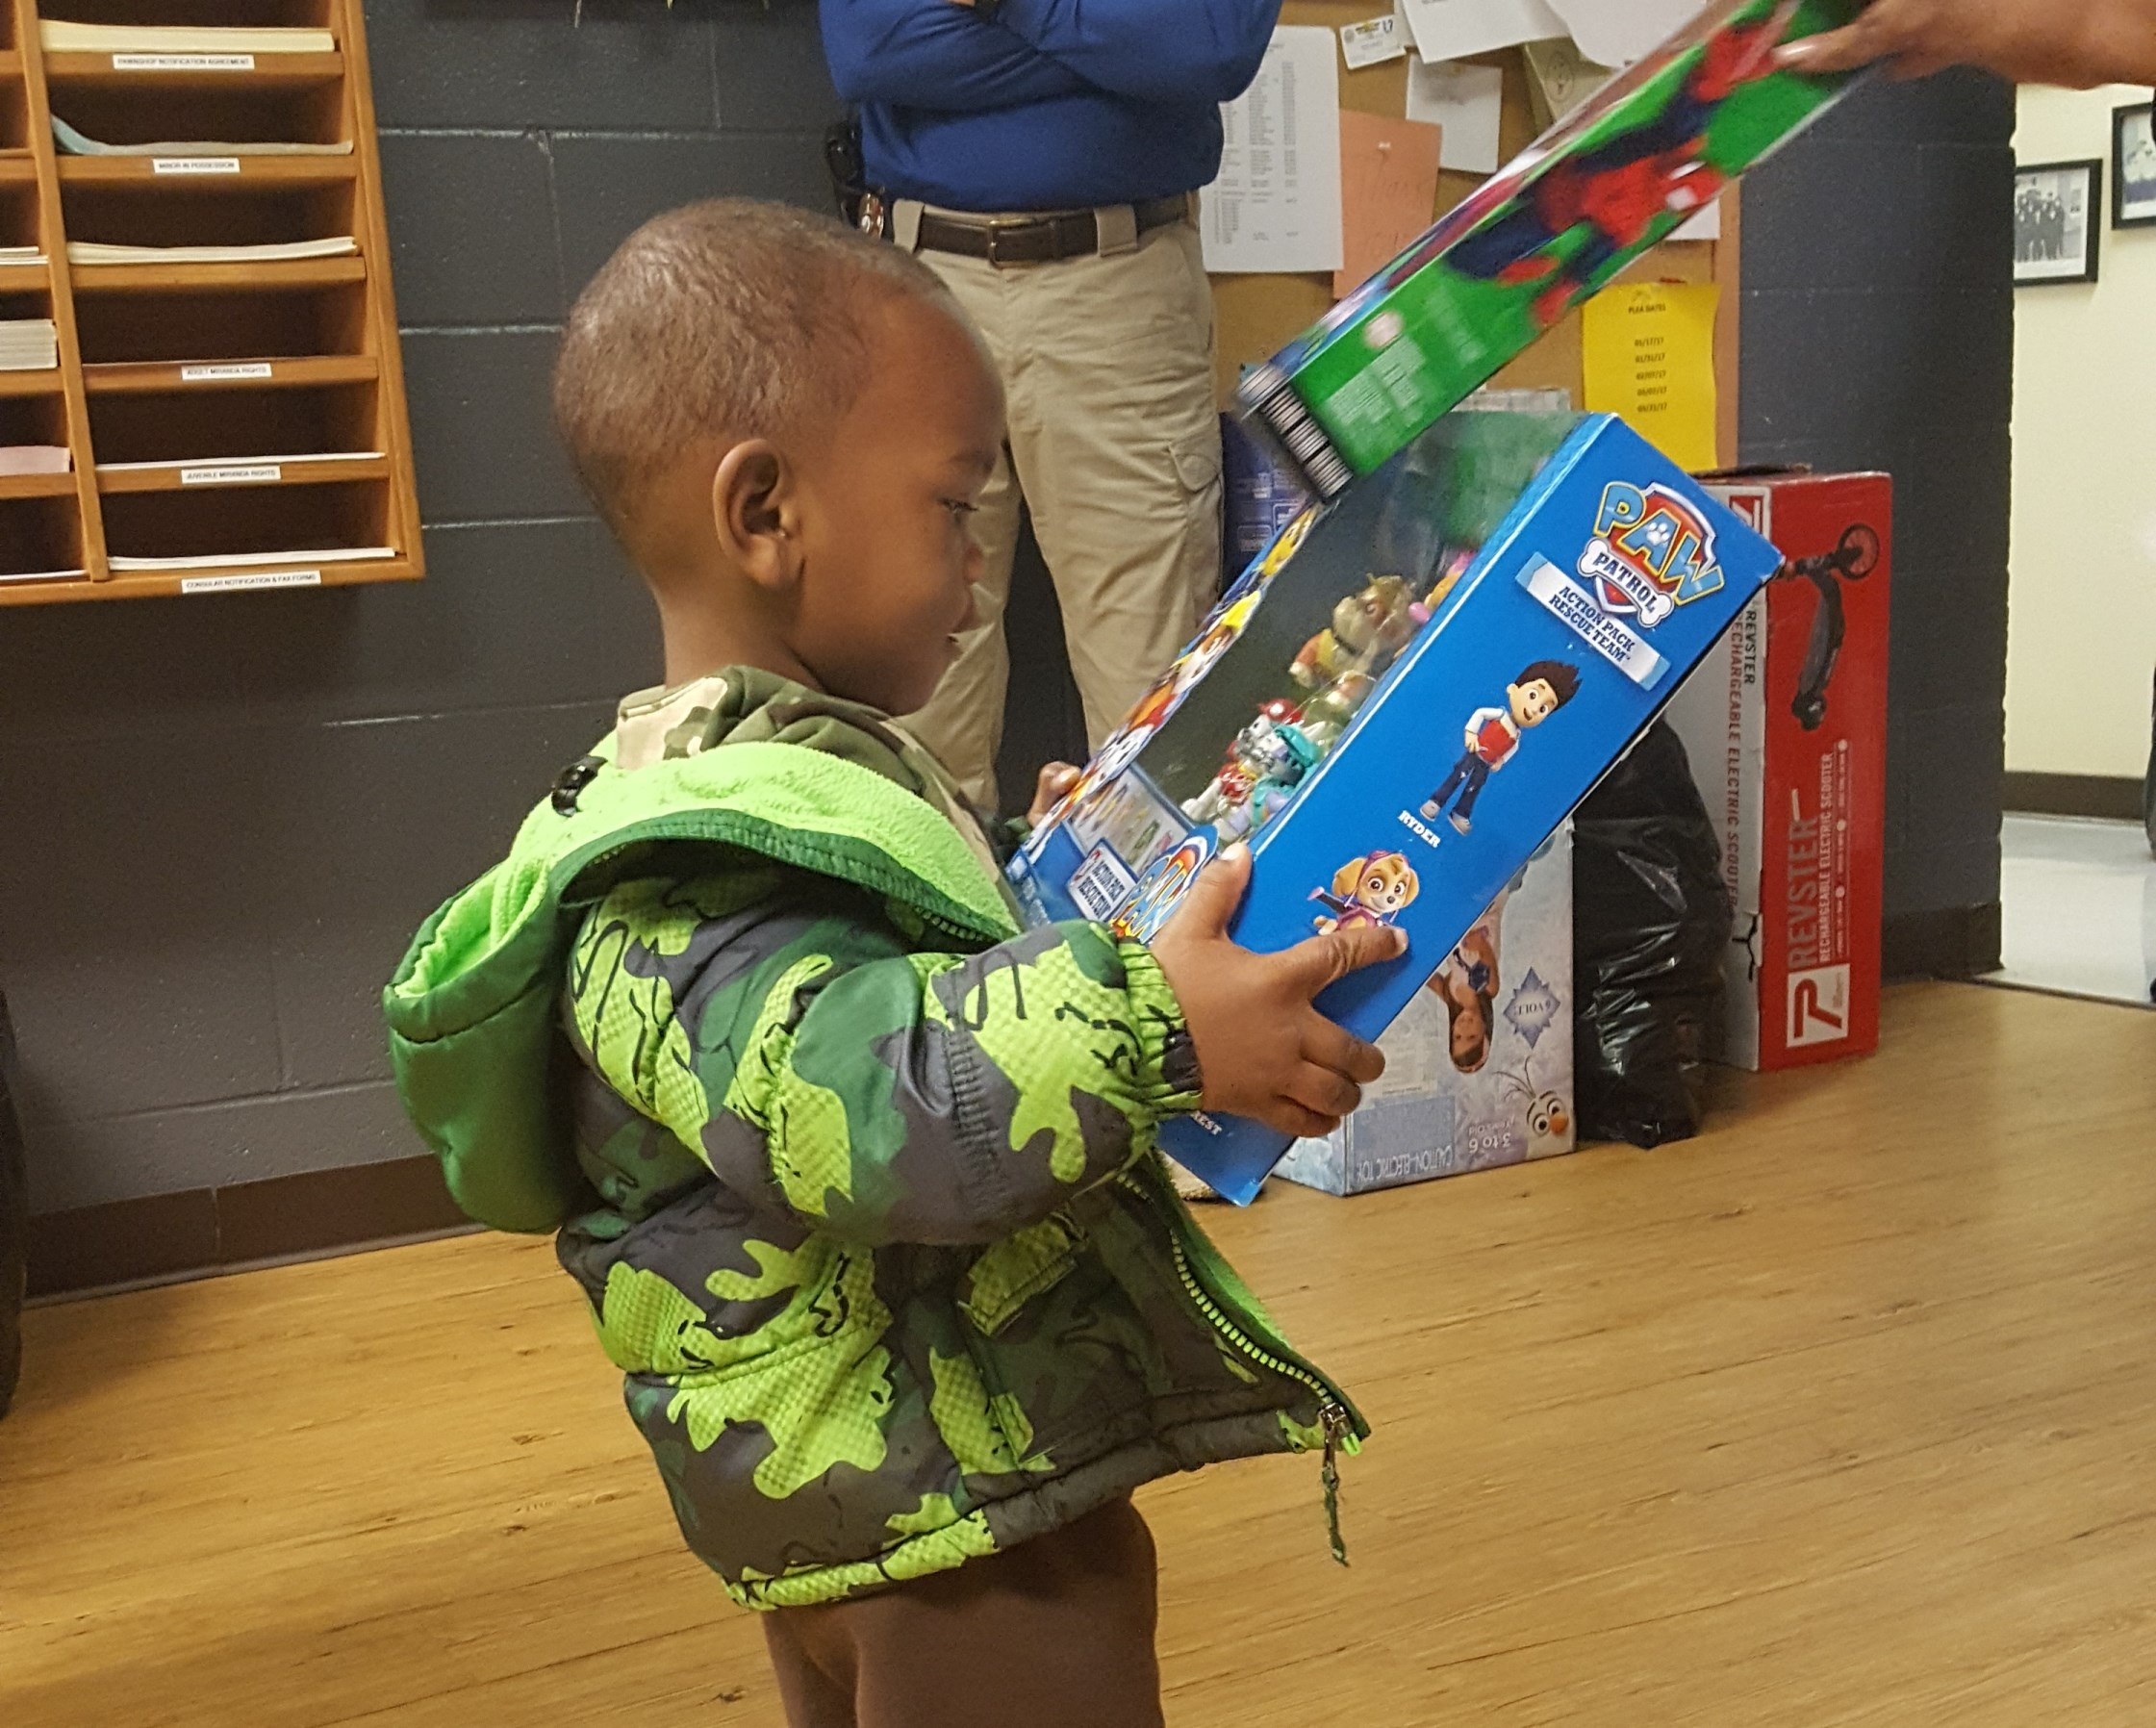 Happy little guy gets new toy.  - Hope Police Department